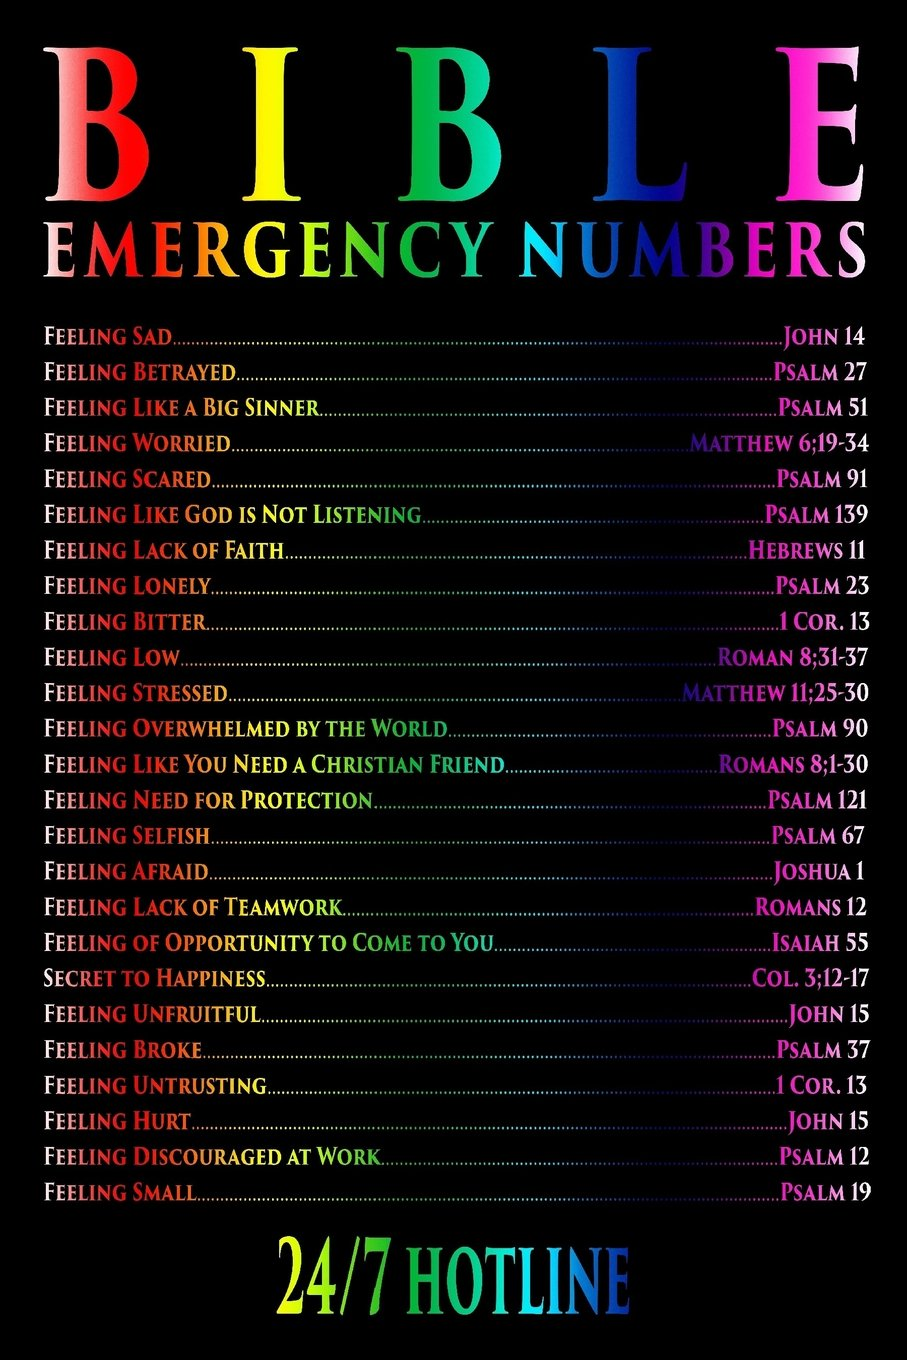 Bible Emergency Numbers 24 7 Hotline Funny Christian Motivational Bible Verse Gift Notebook Publishing Creative Juices 9781720490128 Amazon Com Books